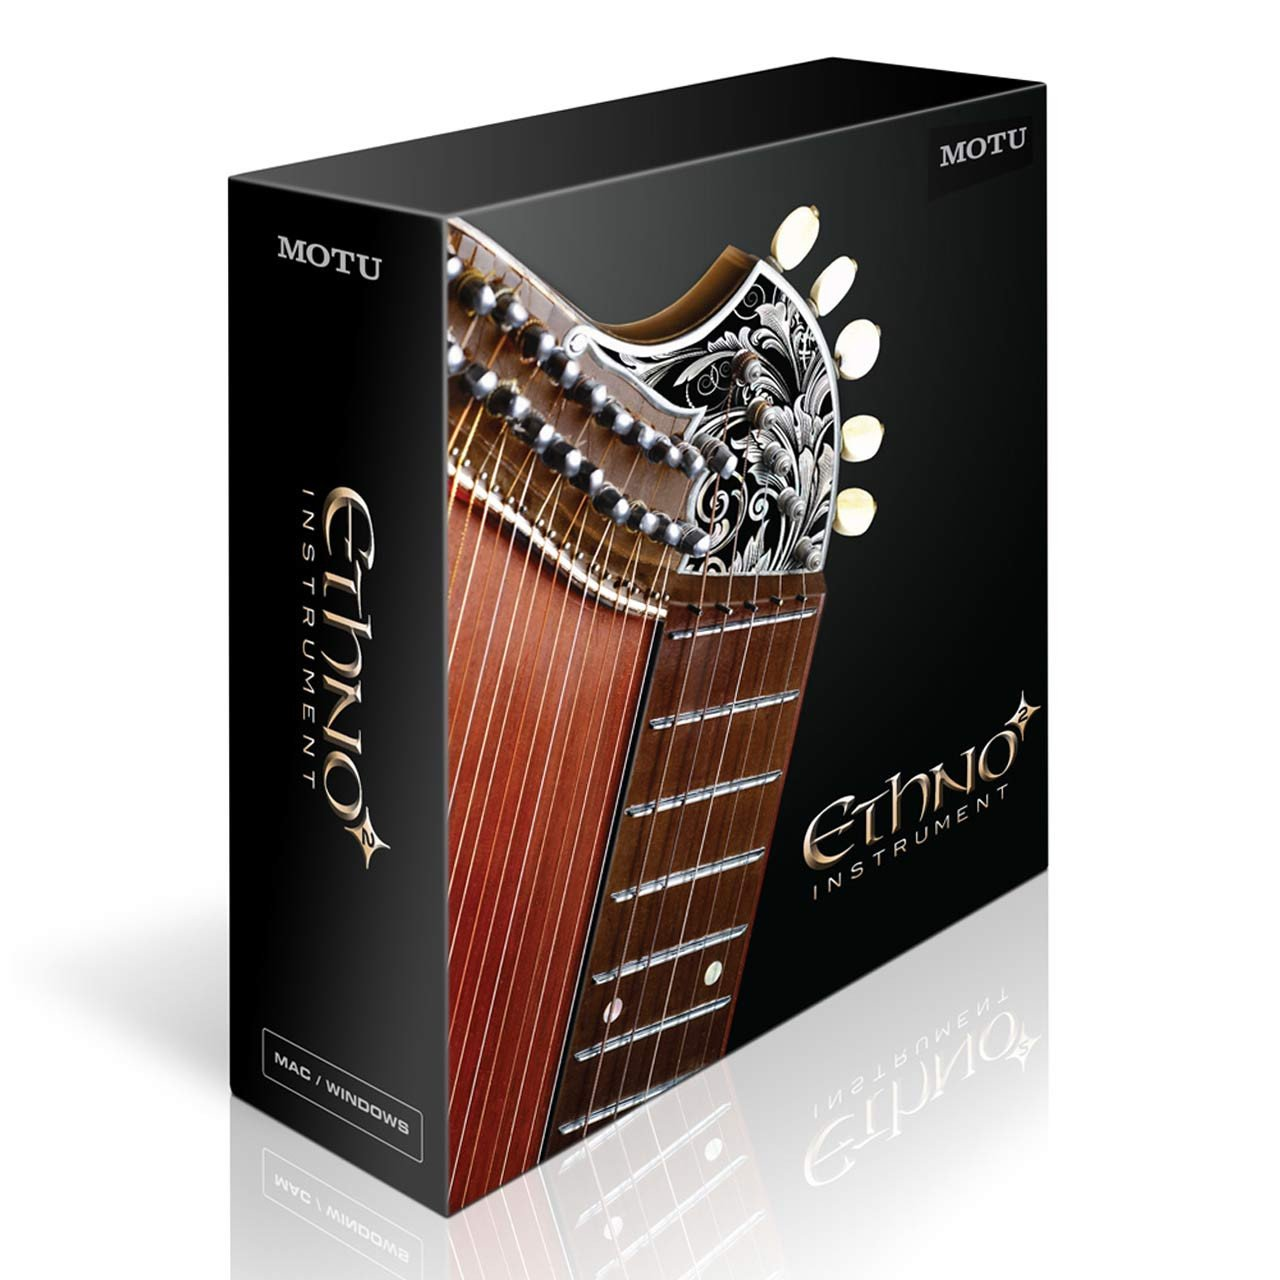 Software Instruments - MOTU Ethno Instrument 2 - World Music Software Instrument